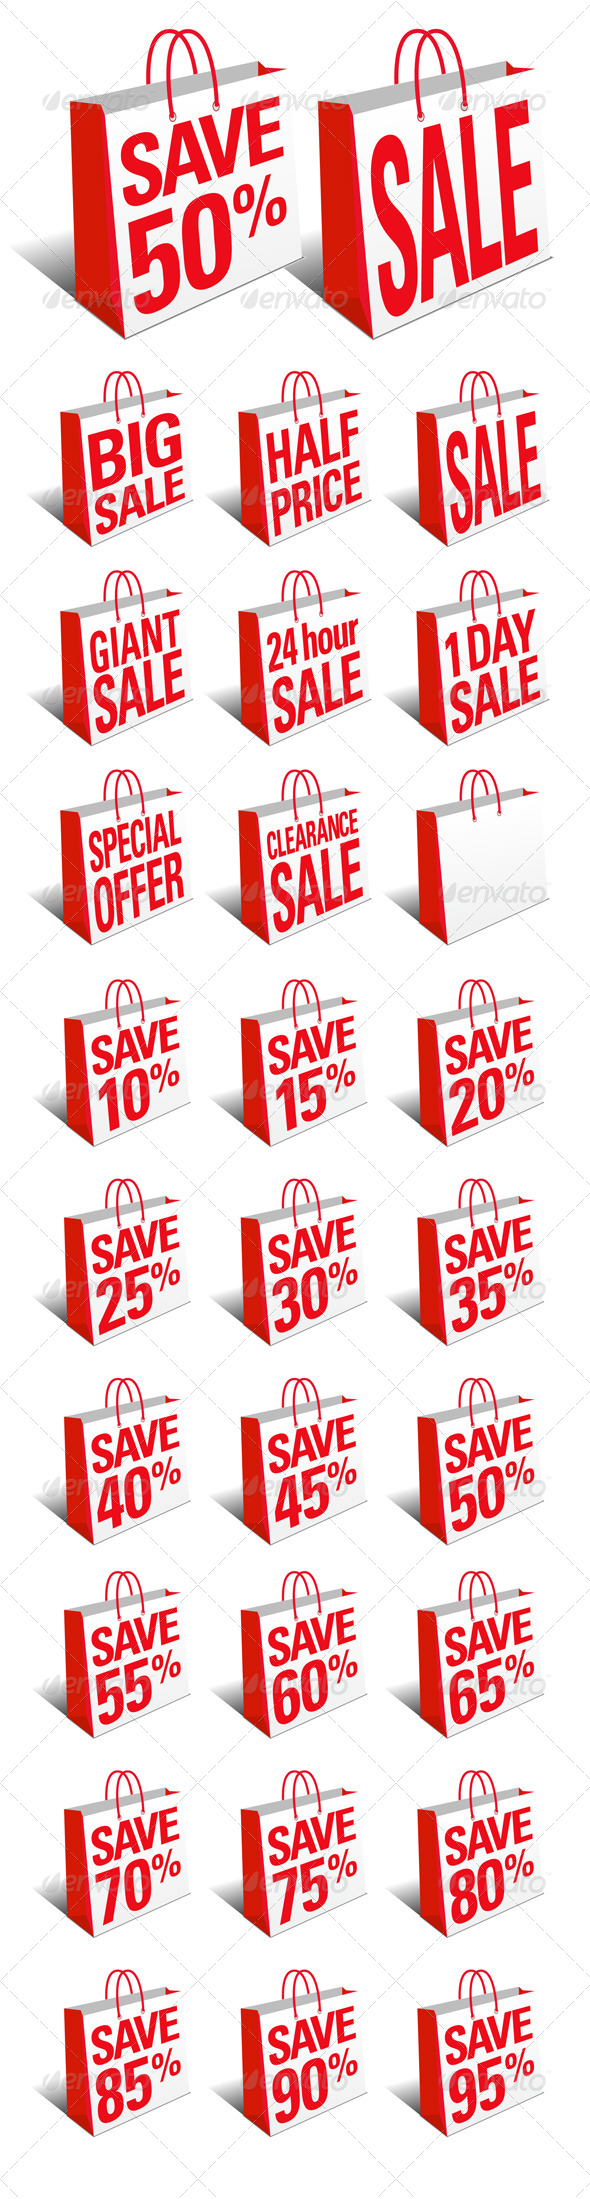 GraphicRiver Sale and Save Shopping Bags 6897095